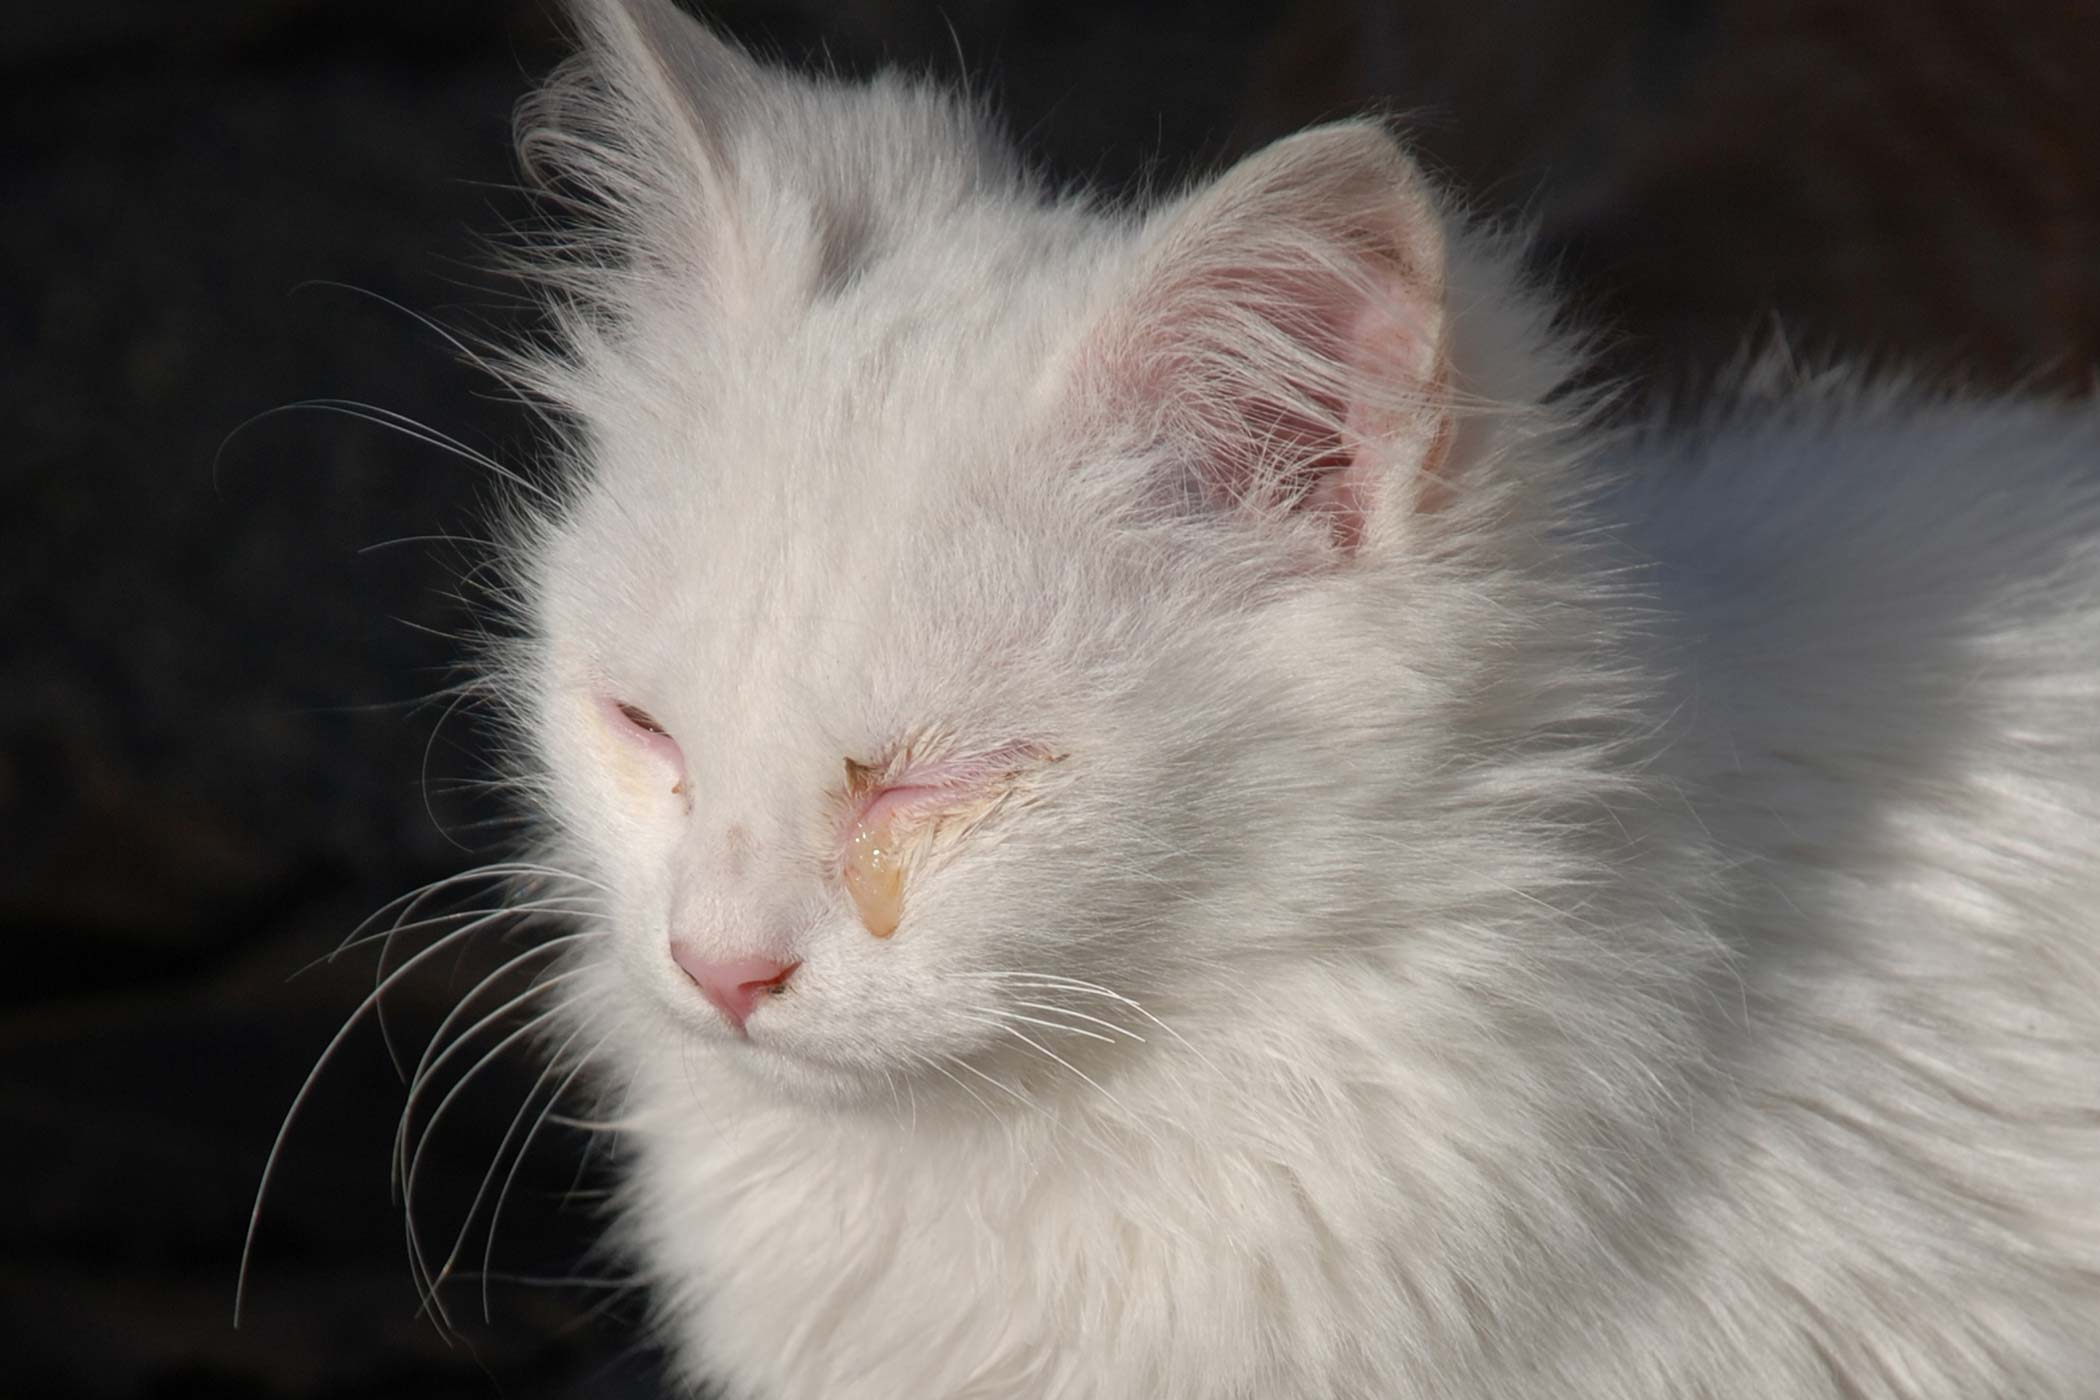 Corneal Inflammation in Cats